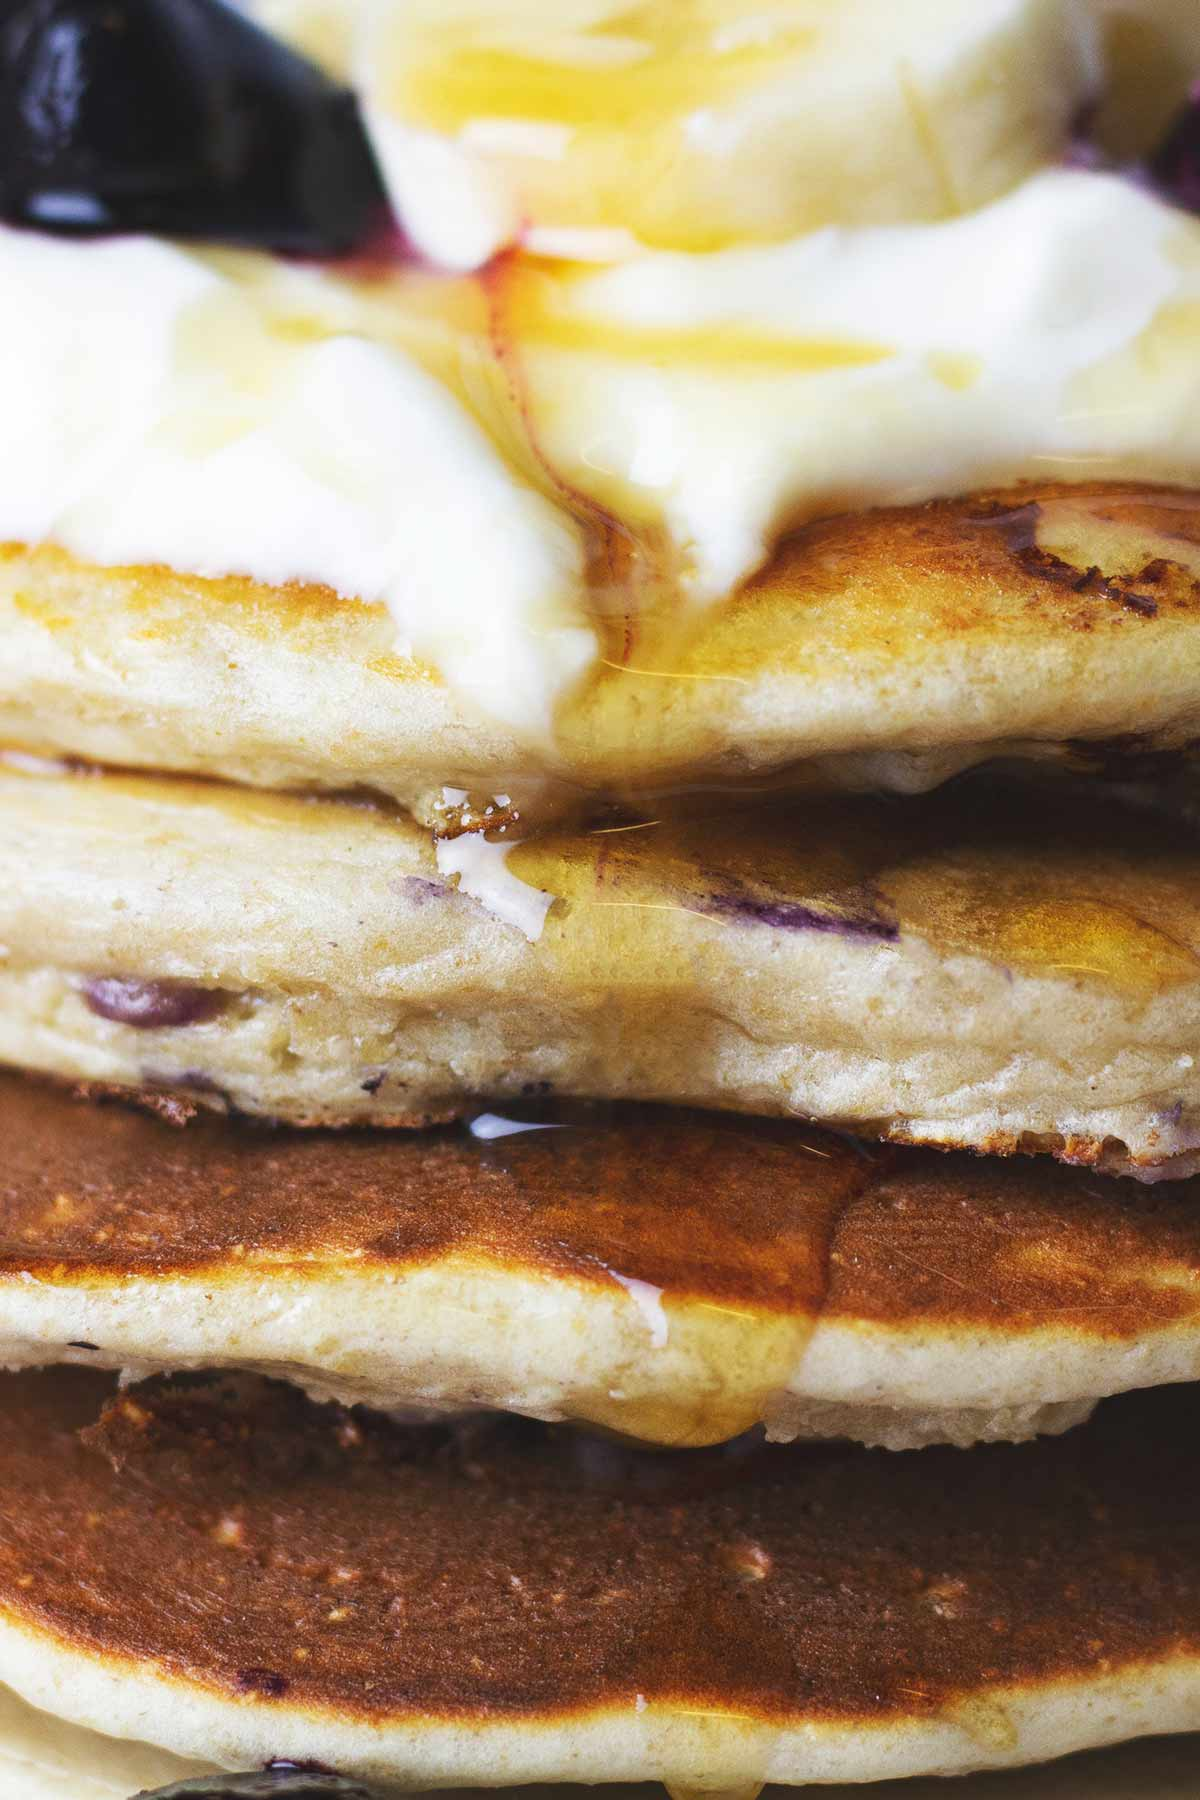 Maple syrup running down pancakes